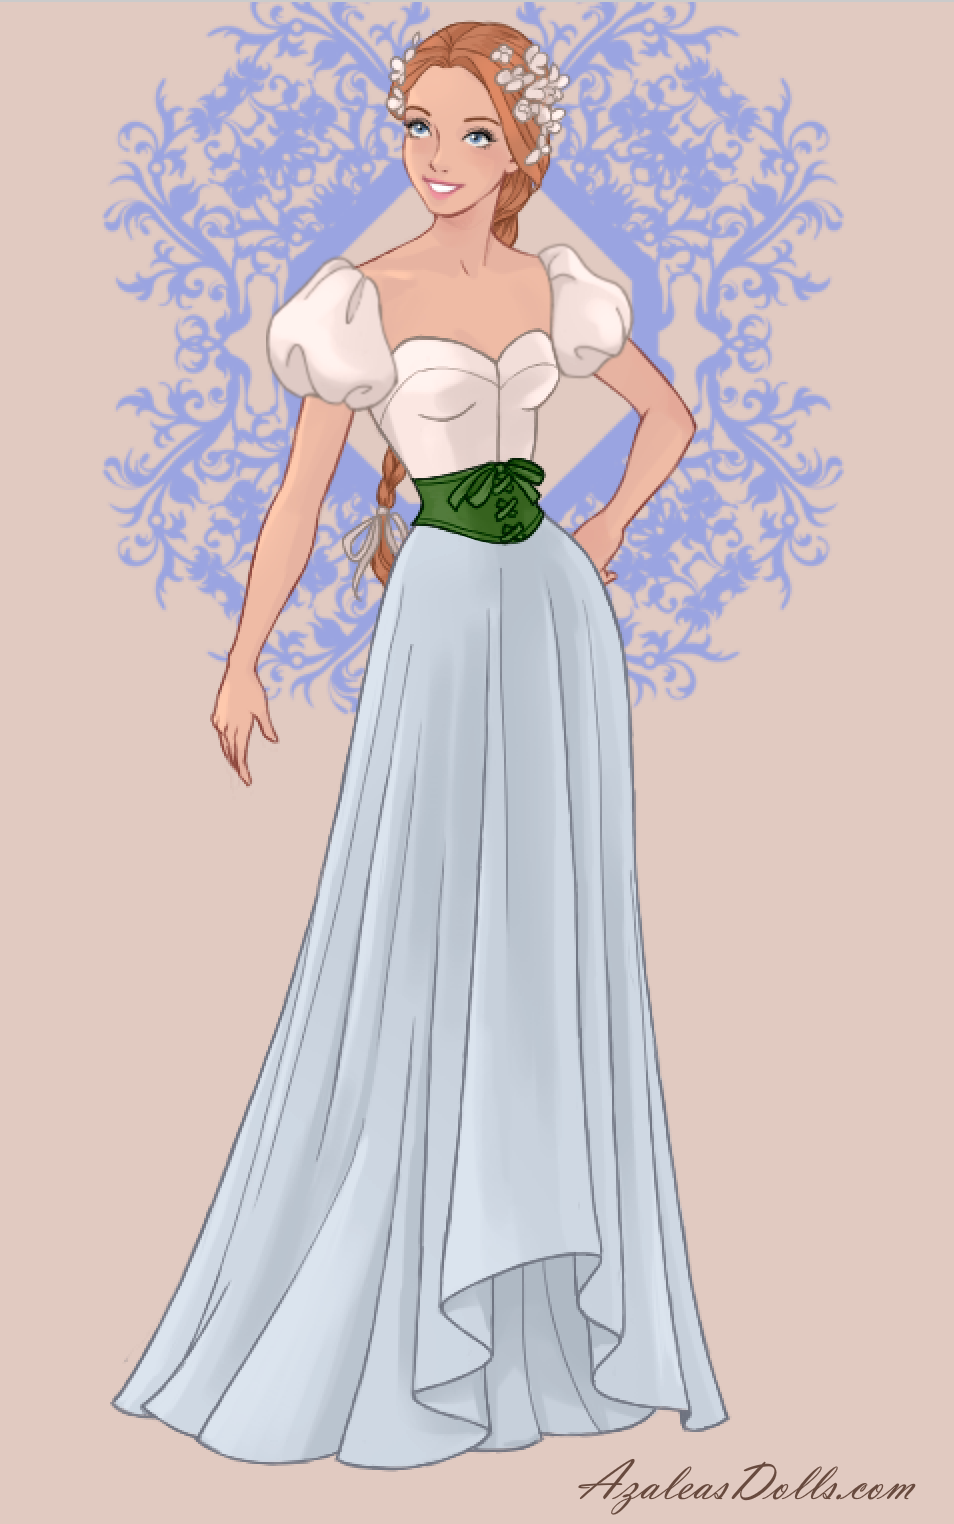 Thumbelina In Wedding Dress Design Dress Up Game Disney Princess Fashion All Disney Princesses Modern Princess